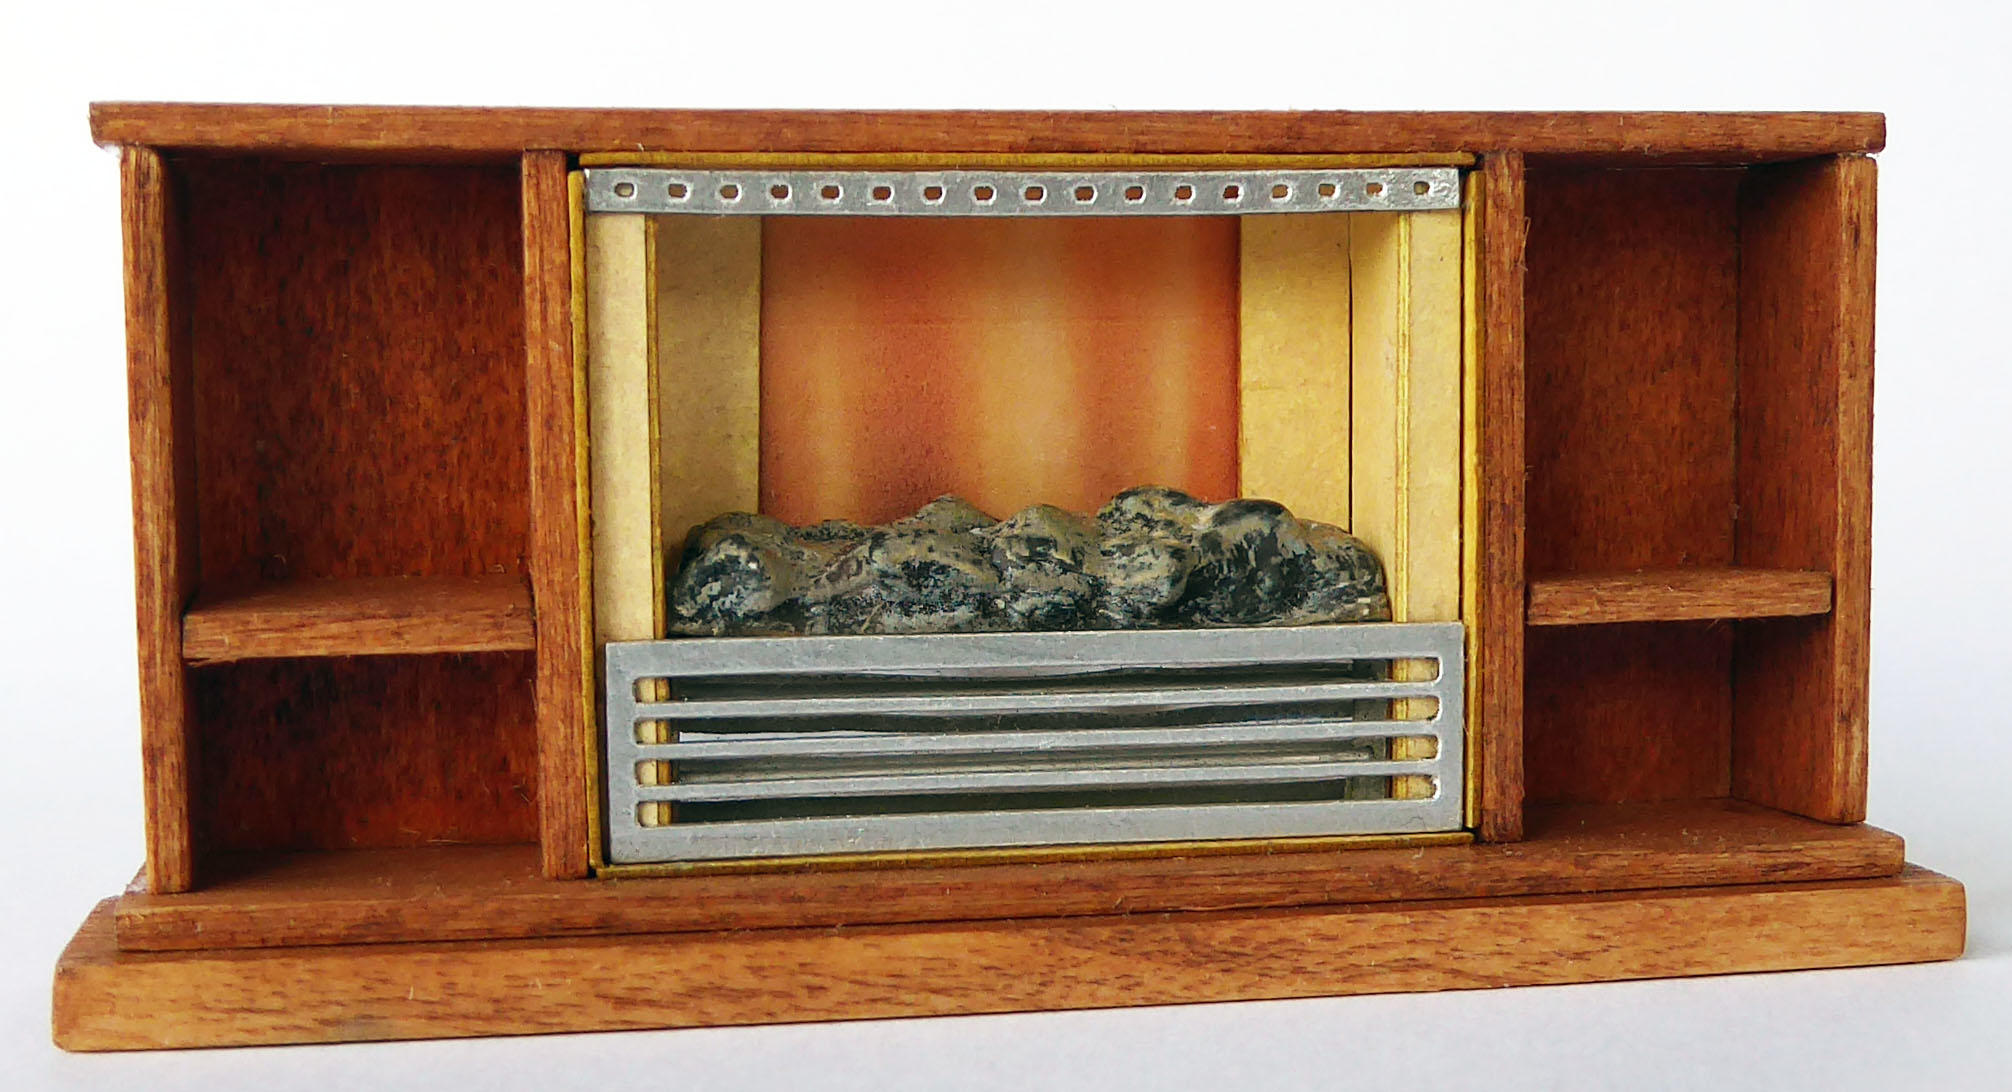 1/24th scale 70s Retro Coal Effect Fire Kit